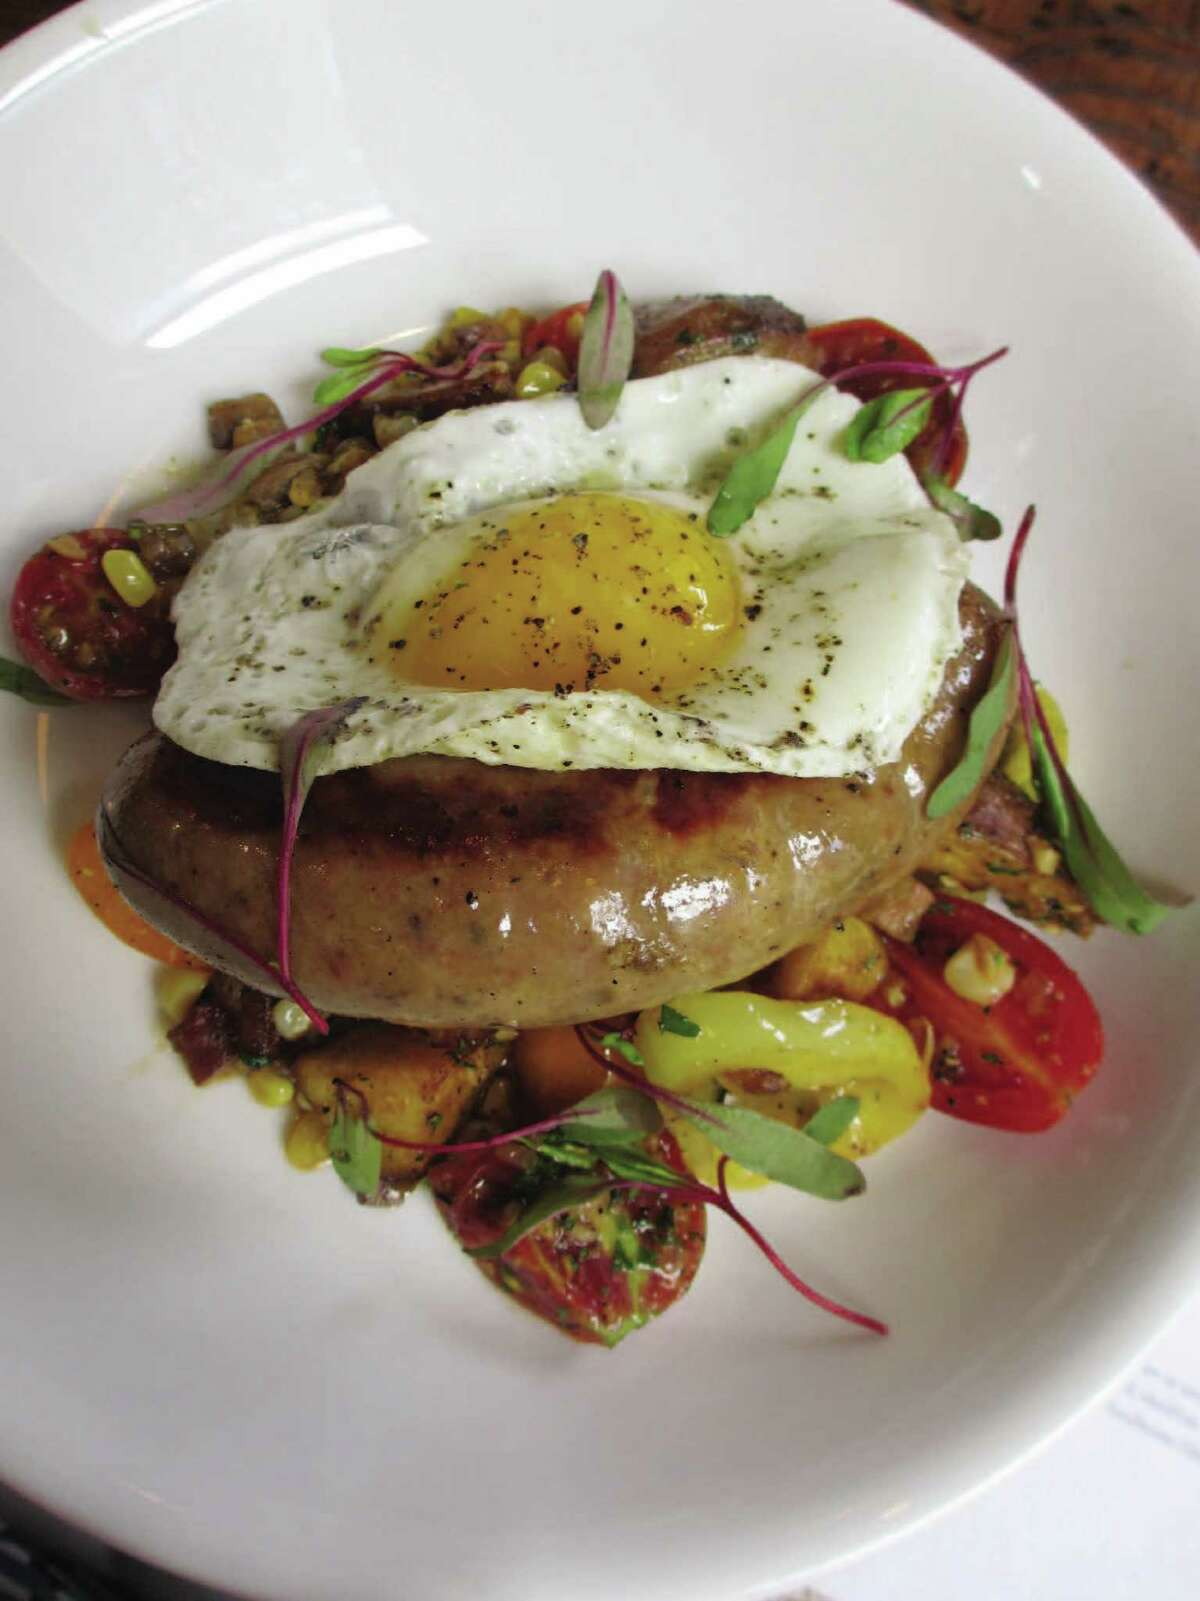 A dish called Wurst Case Scenario (sausage with a fried egg) is served at lunch at Cured, a restaurant in the Pearl that specializes in cured meat.